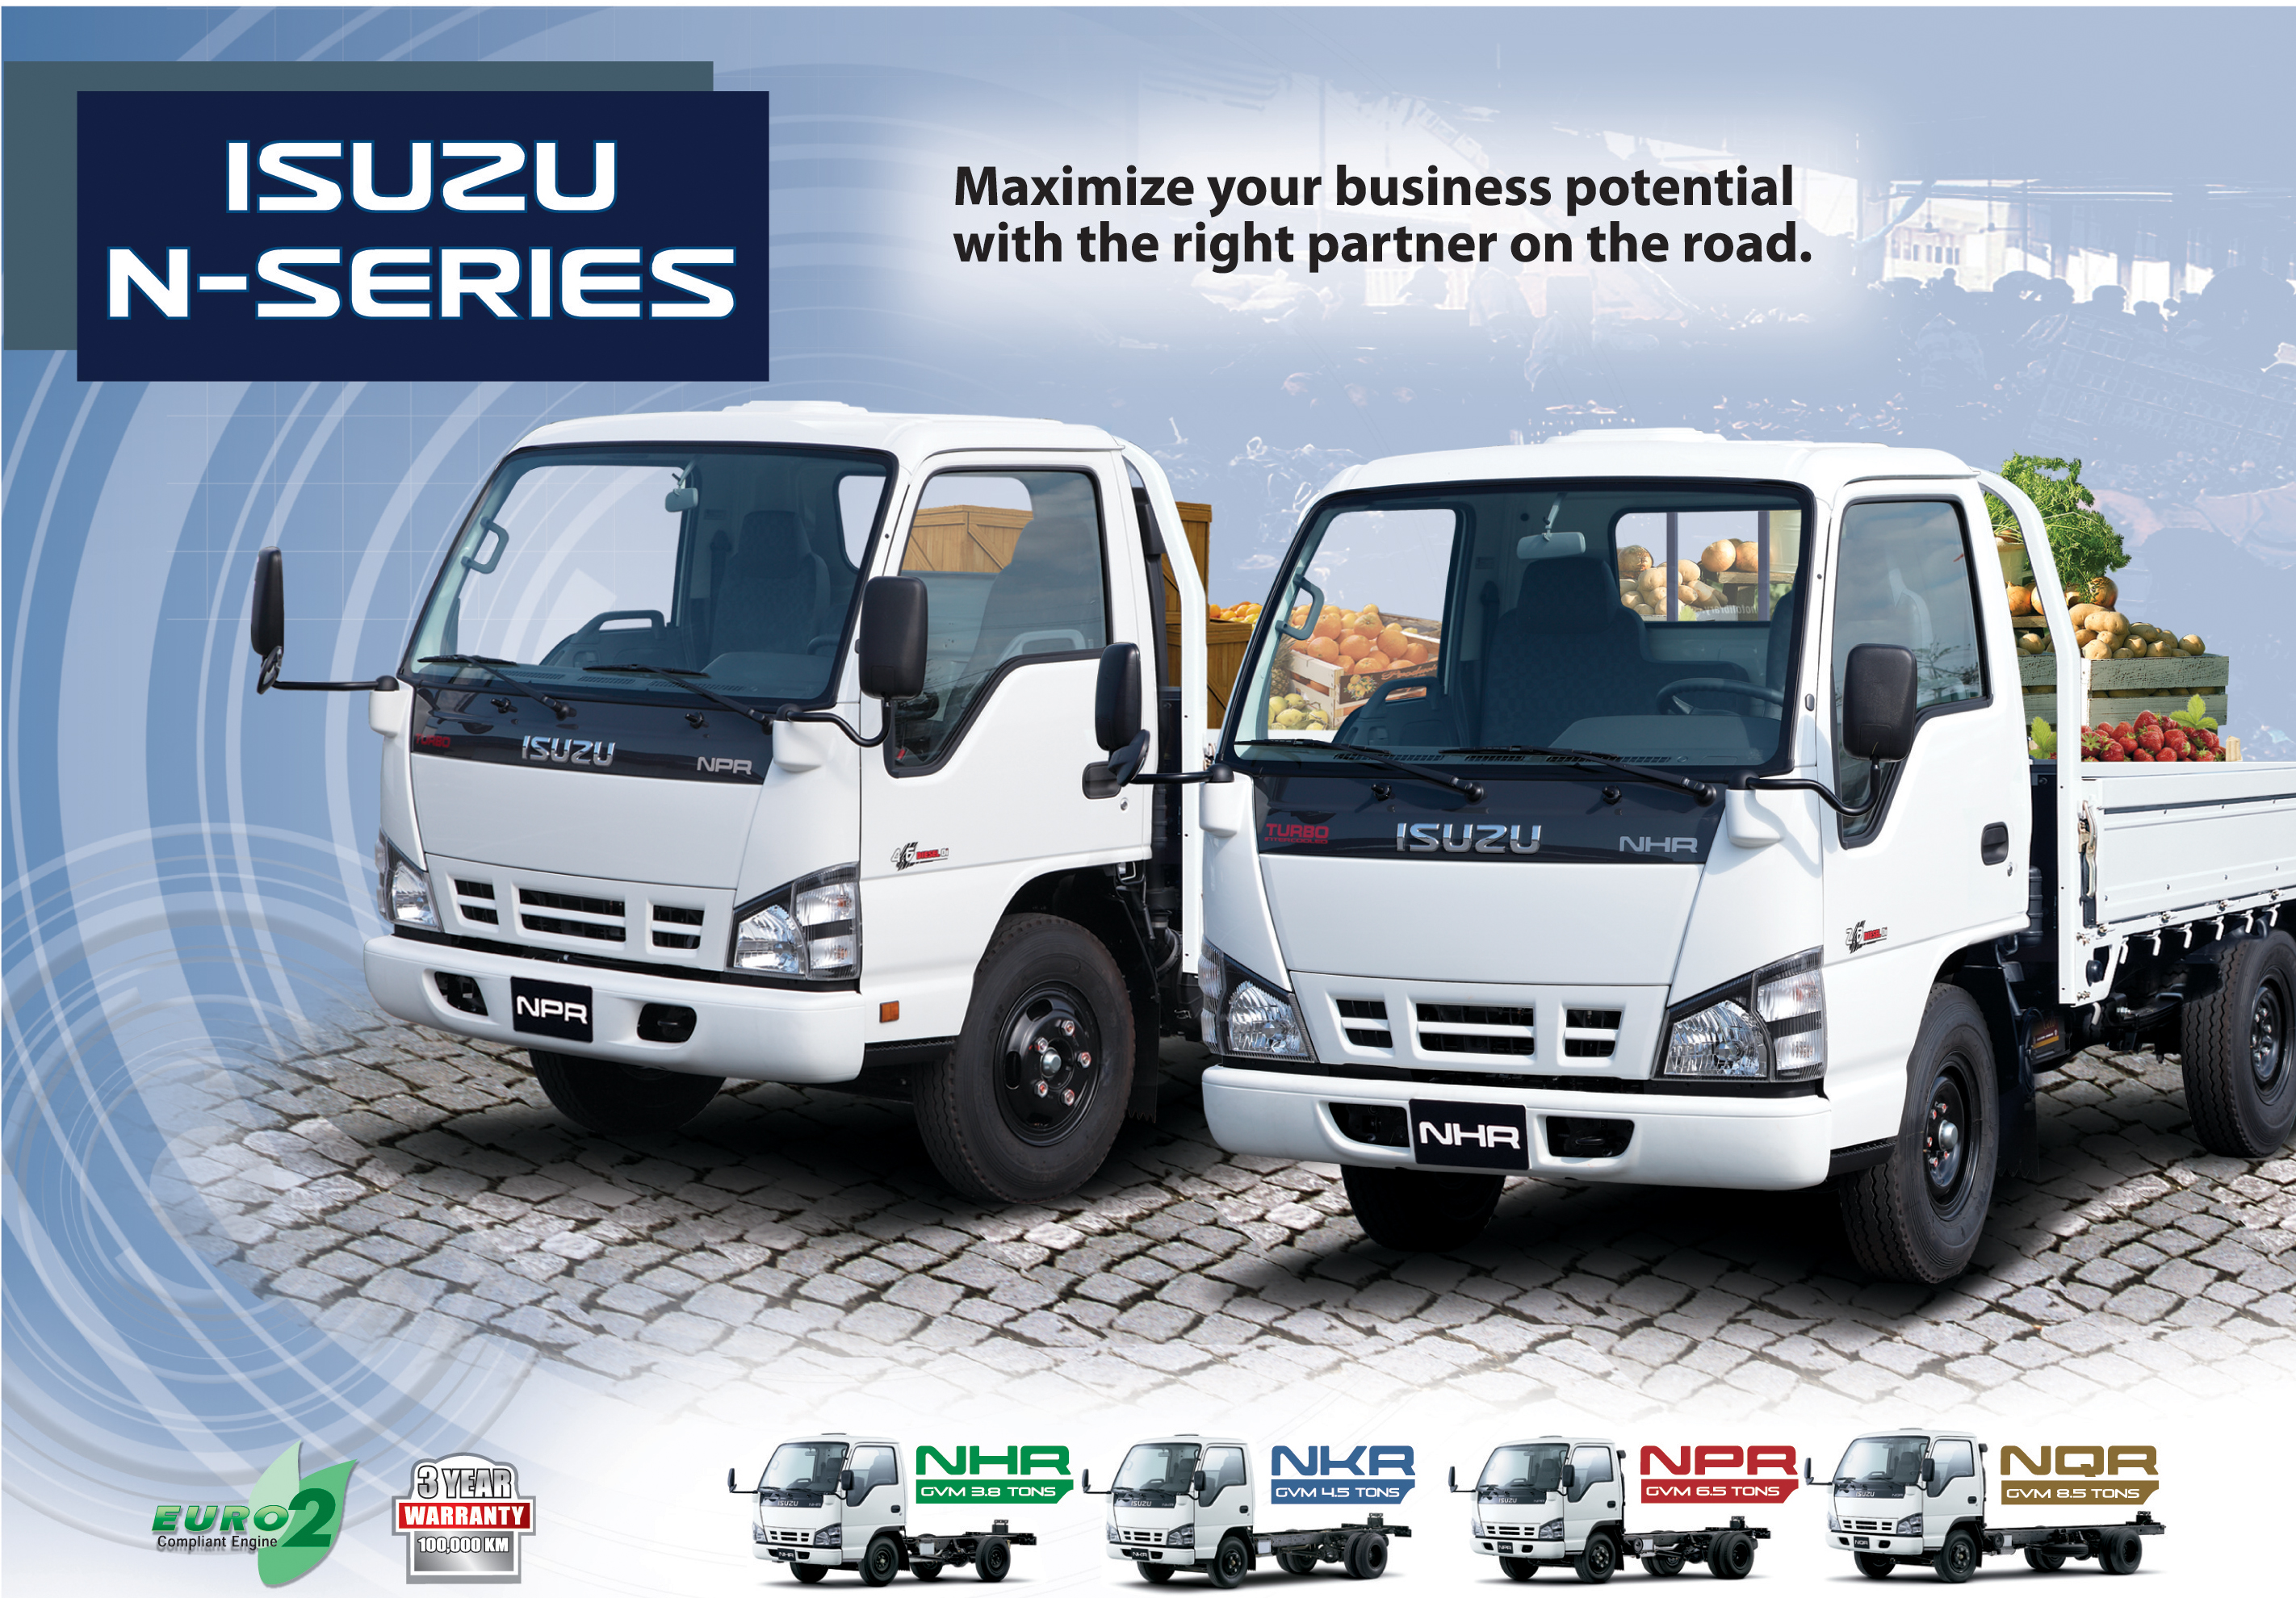 isuzu n-series #3